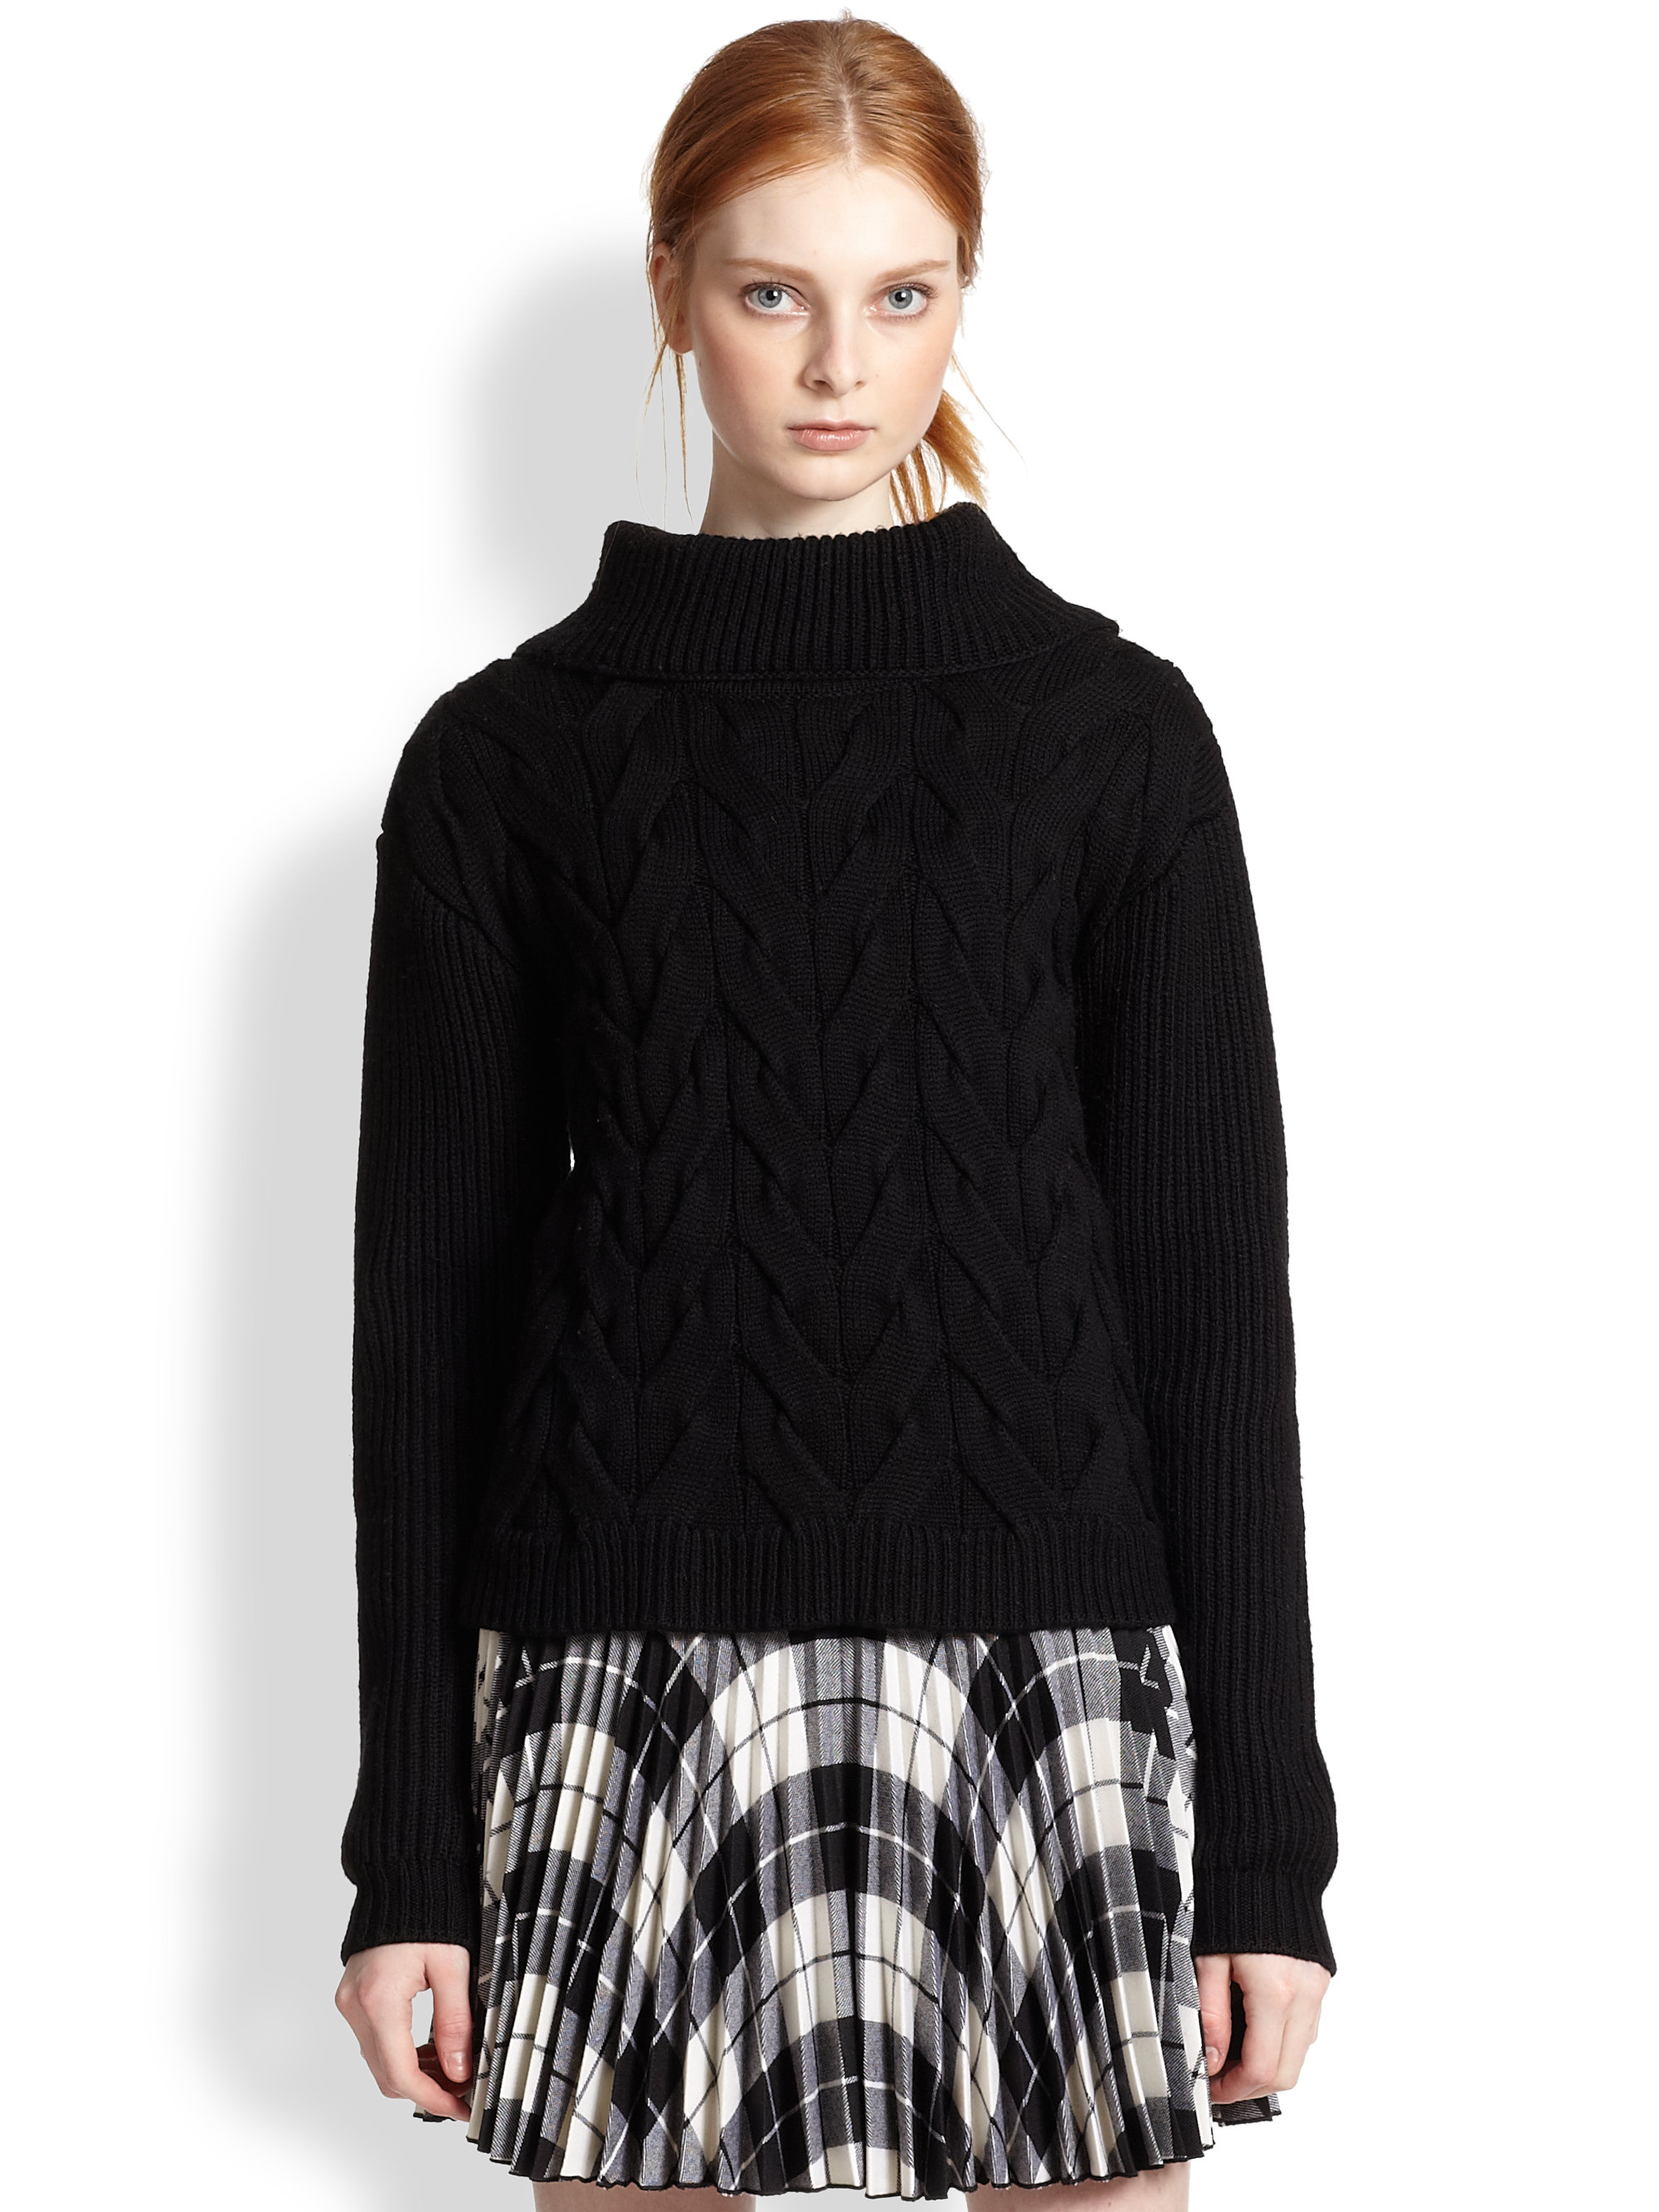 Milly Wool Cable-Knit Turtleneck Sweater in Black | Lyst